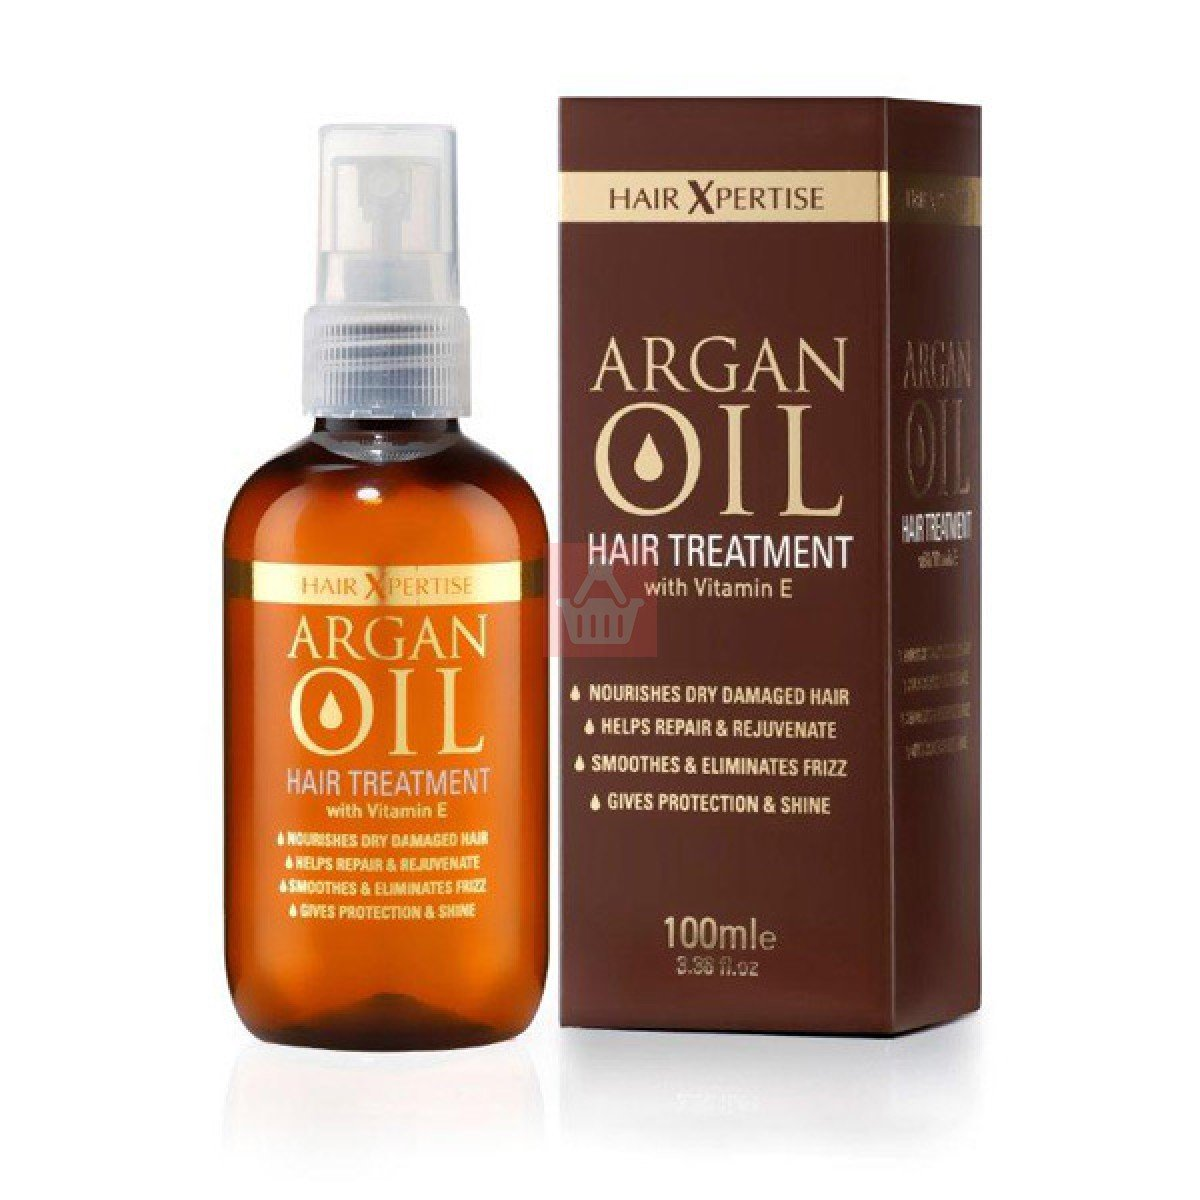 Argan Oil, Morocco oil, Hair Oil Rose Oil, Essential oil